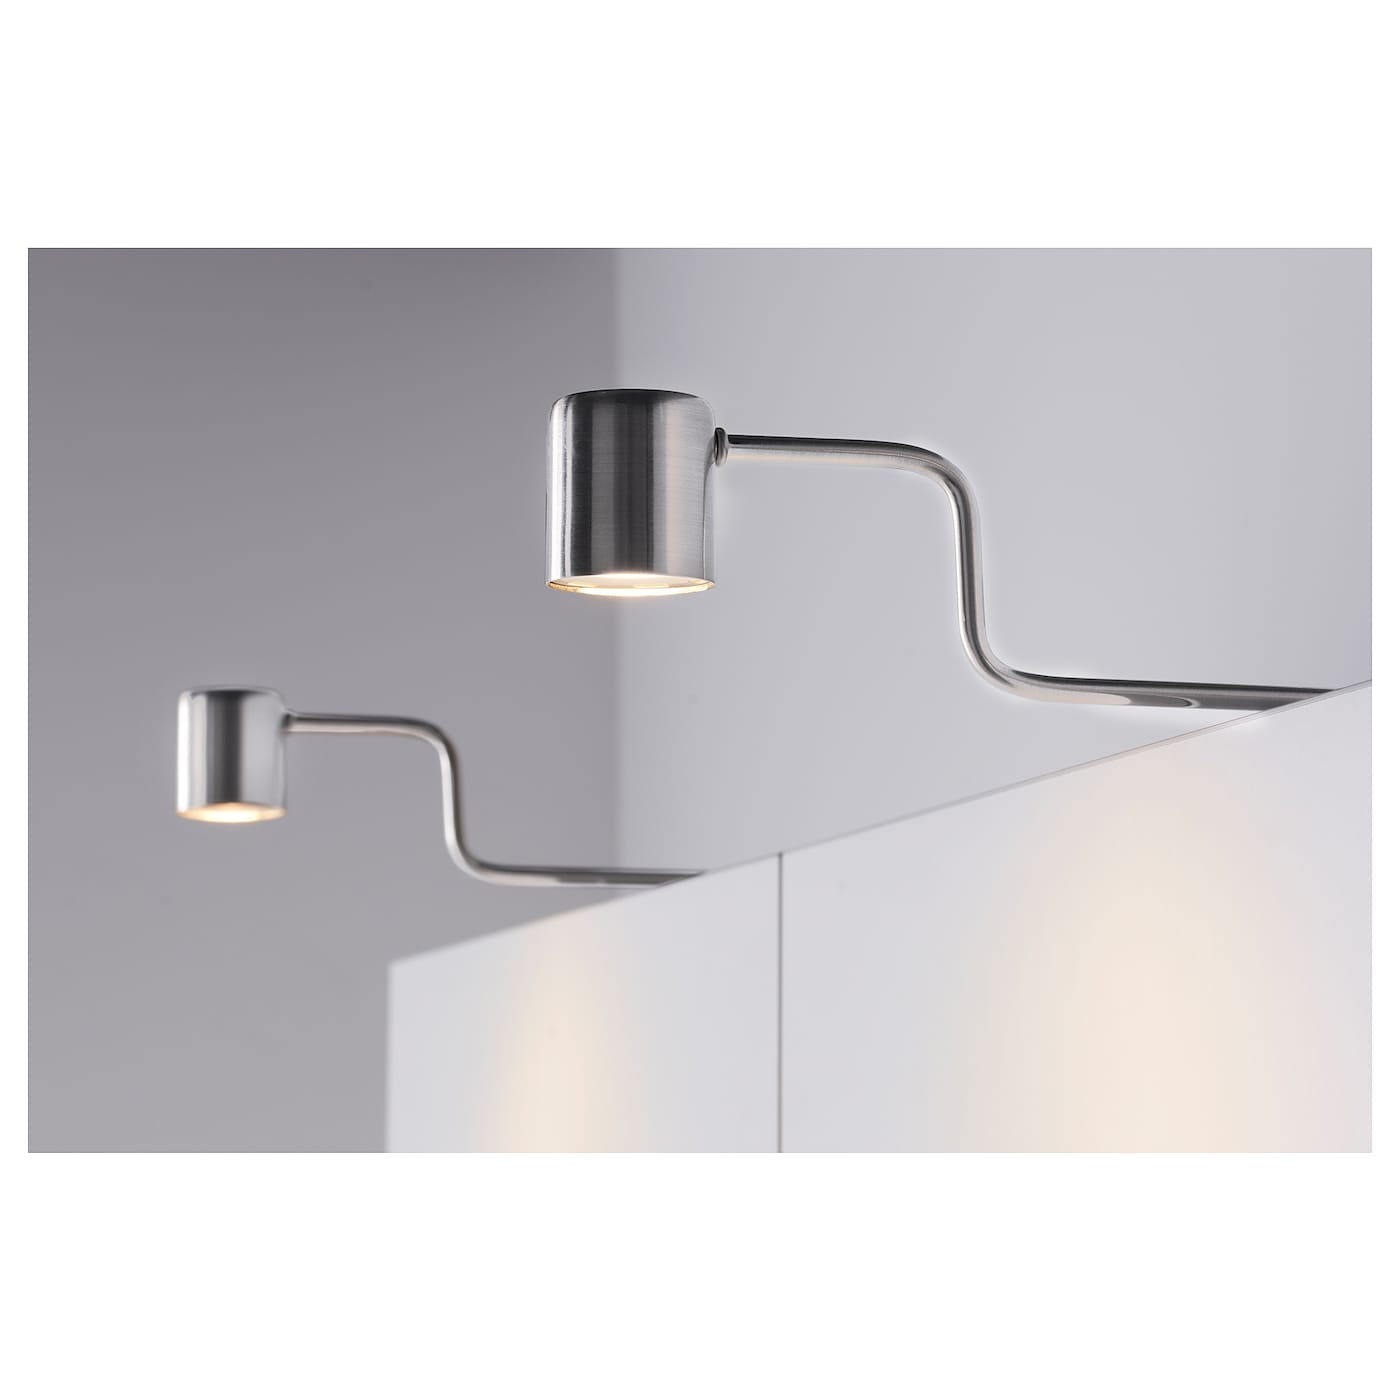 Ikea Kitchen Cabinet Lighting: URSHULT LED Cabinet Lighting Nickel-plated